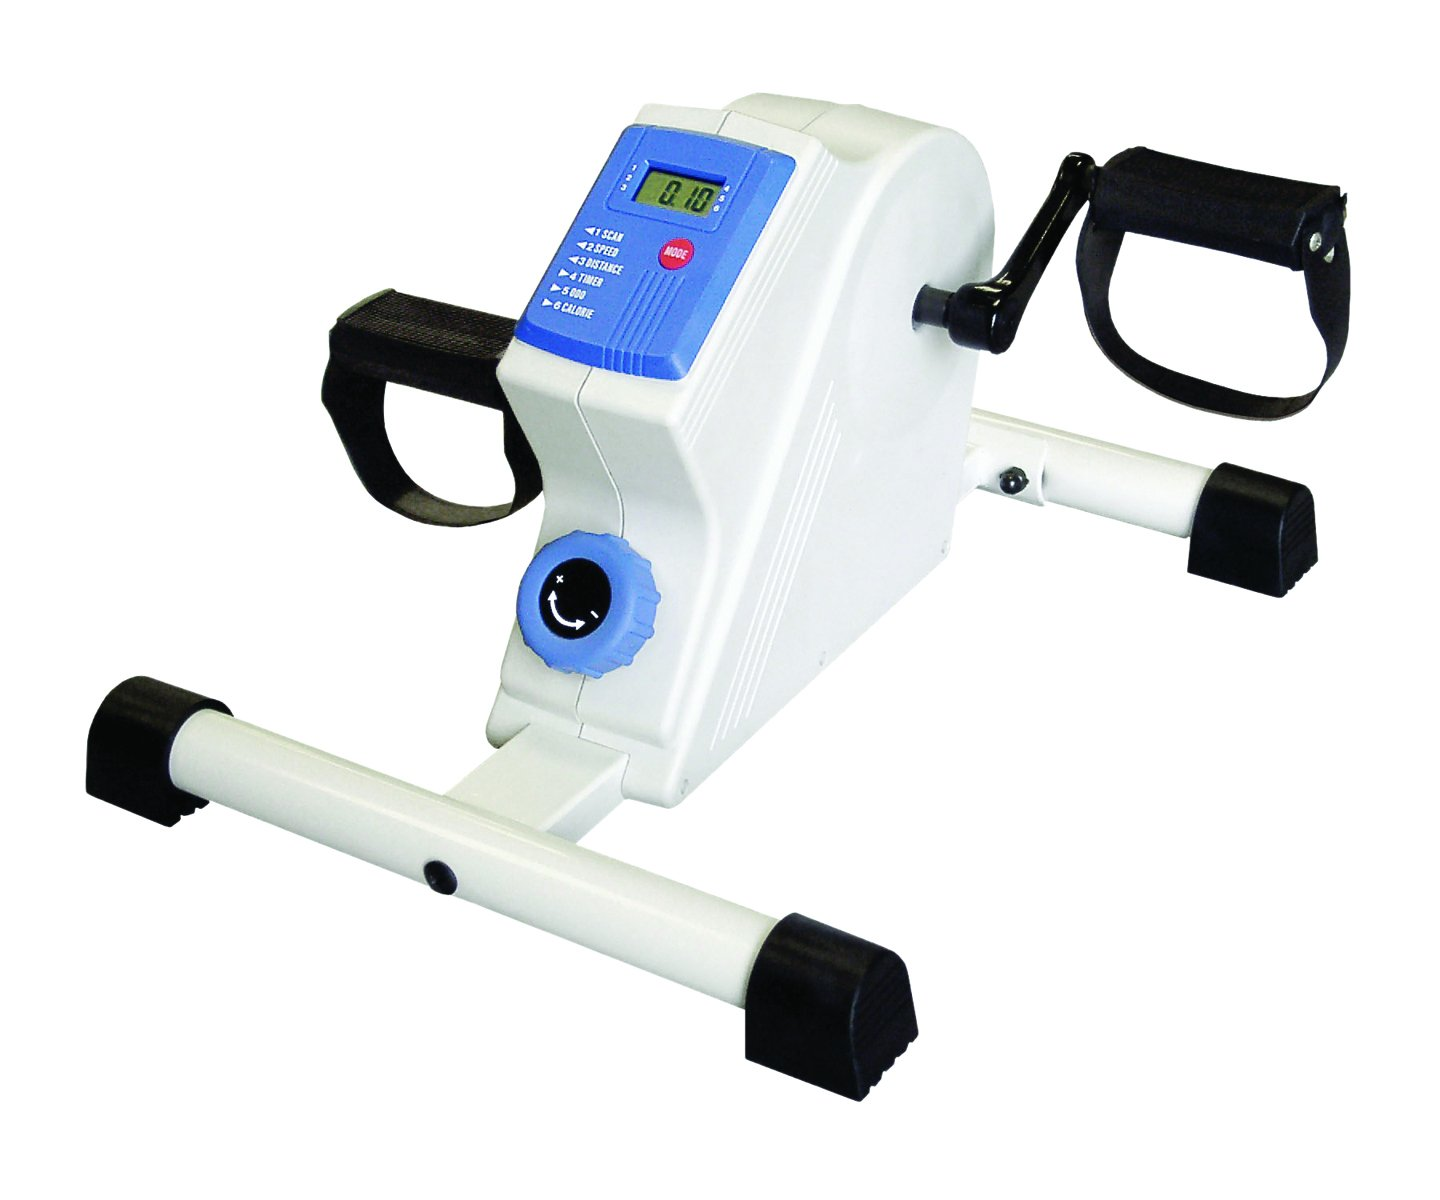 CanDo Arm, Leg Pedal Exerciser - Deluxe with LCD monitor